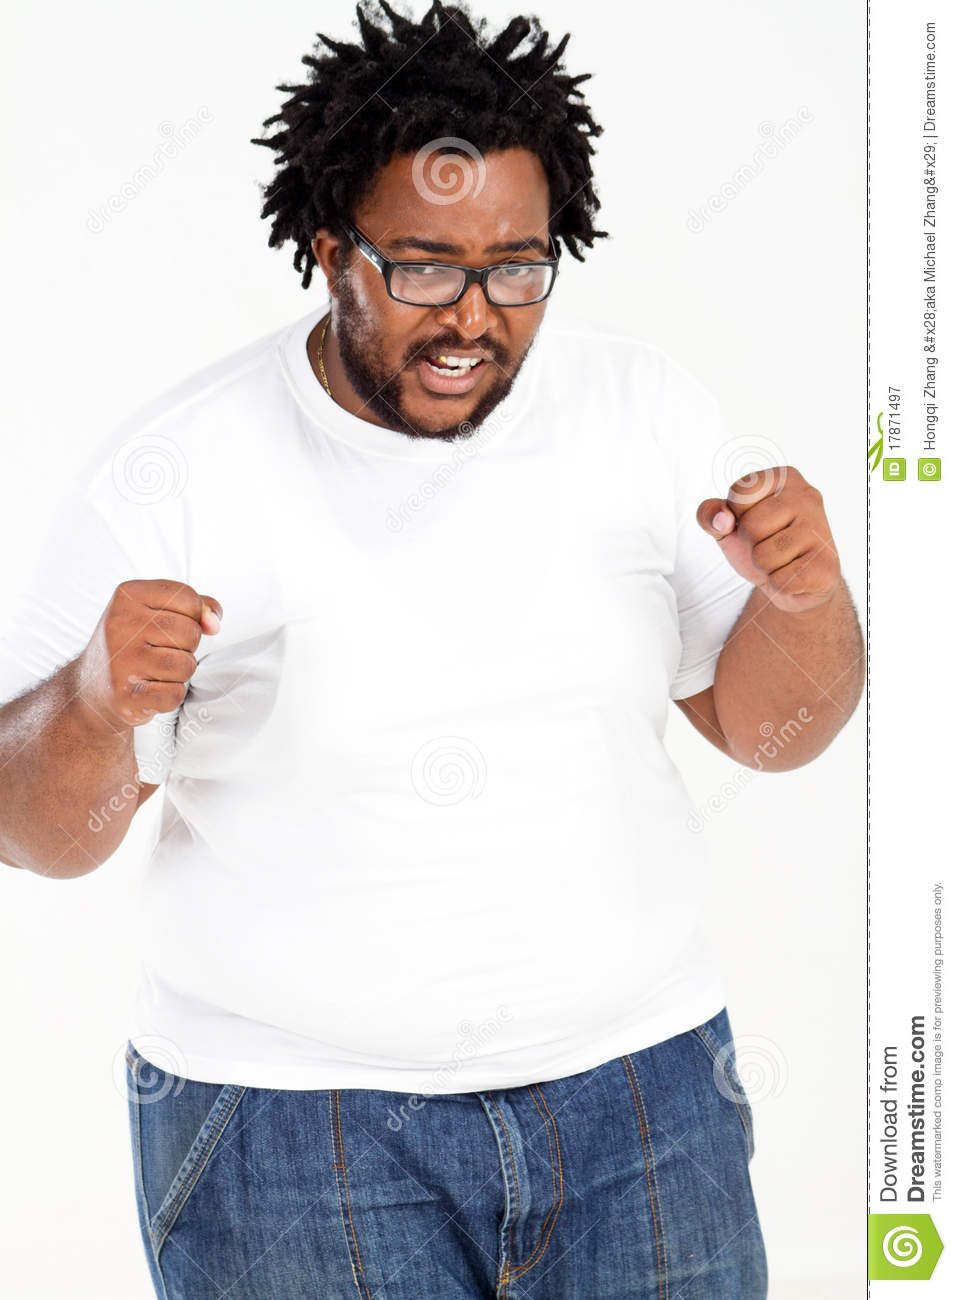 Overweight African Man Stock Image Image Of African 17871497